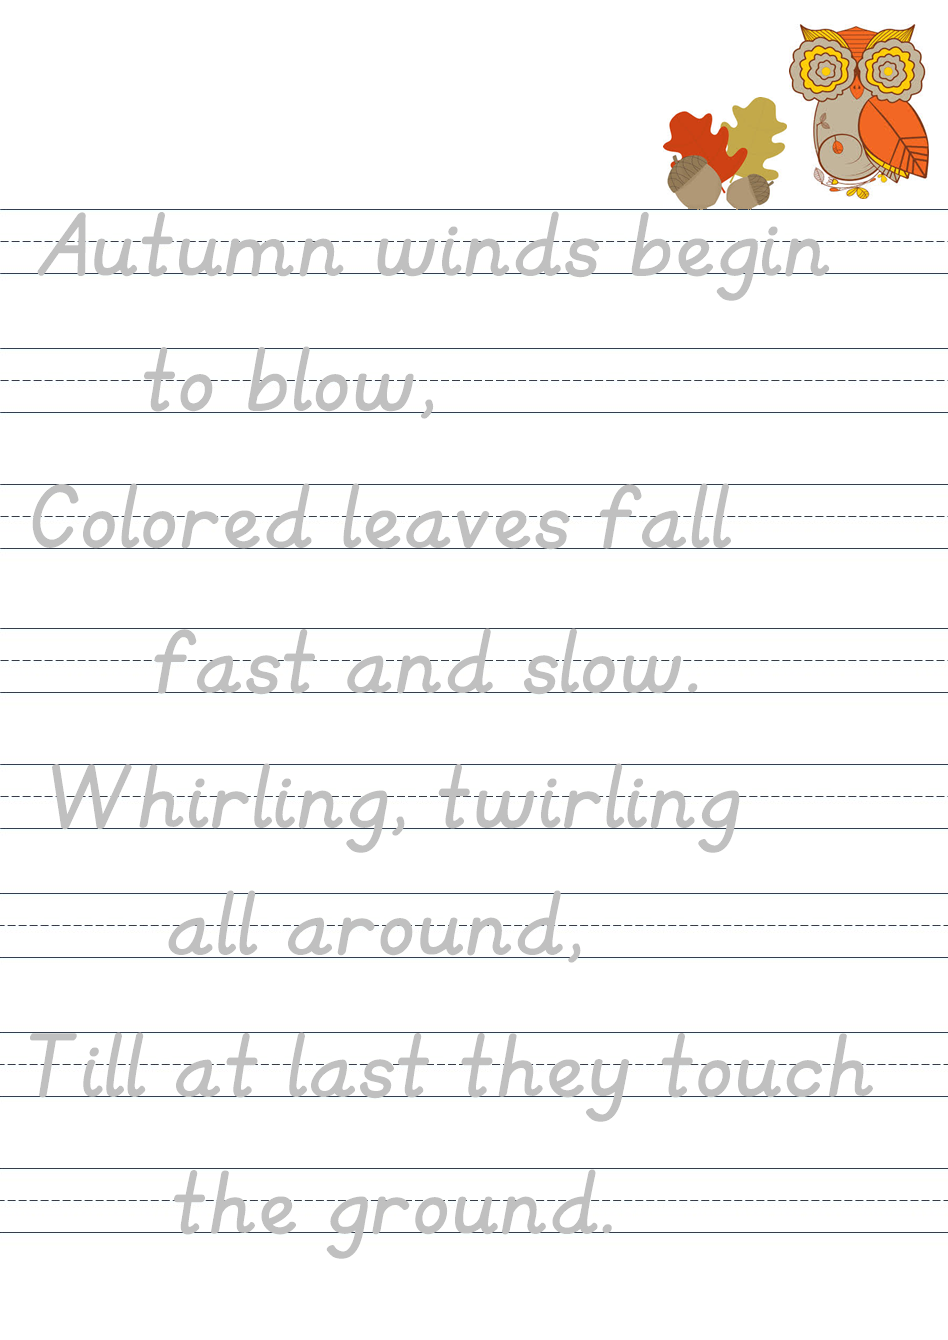 Halloween Poetry Tracing Page Fall Leaves Poem Fine Motor And Hand Writing Practice Writing Practice Poetry Reading Skills [ 1340 x 948 Pixel ]